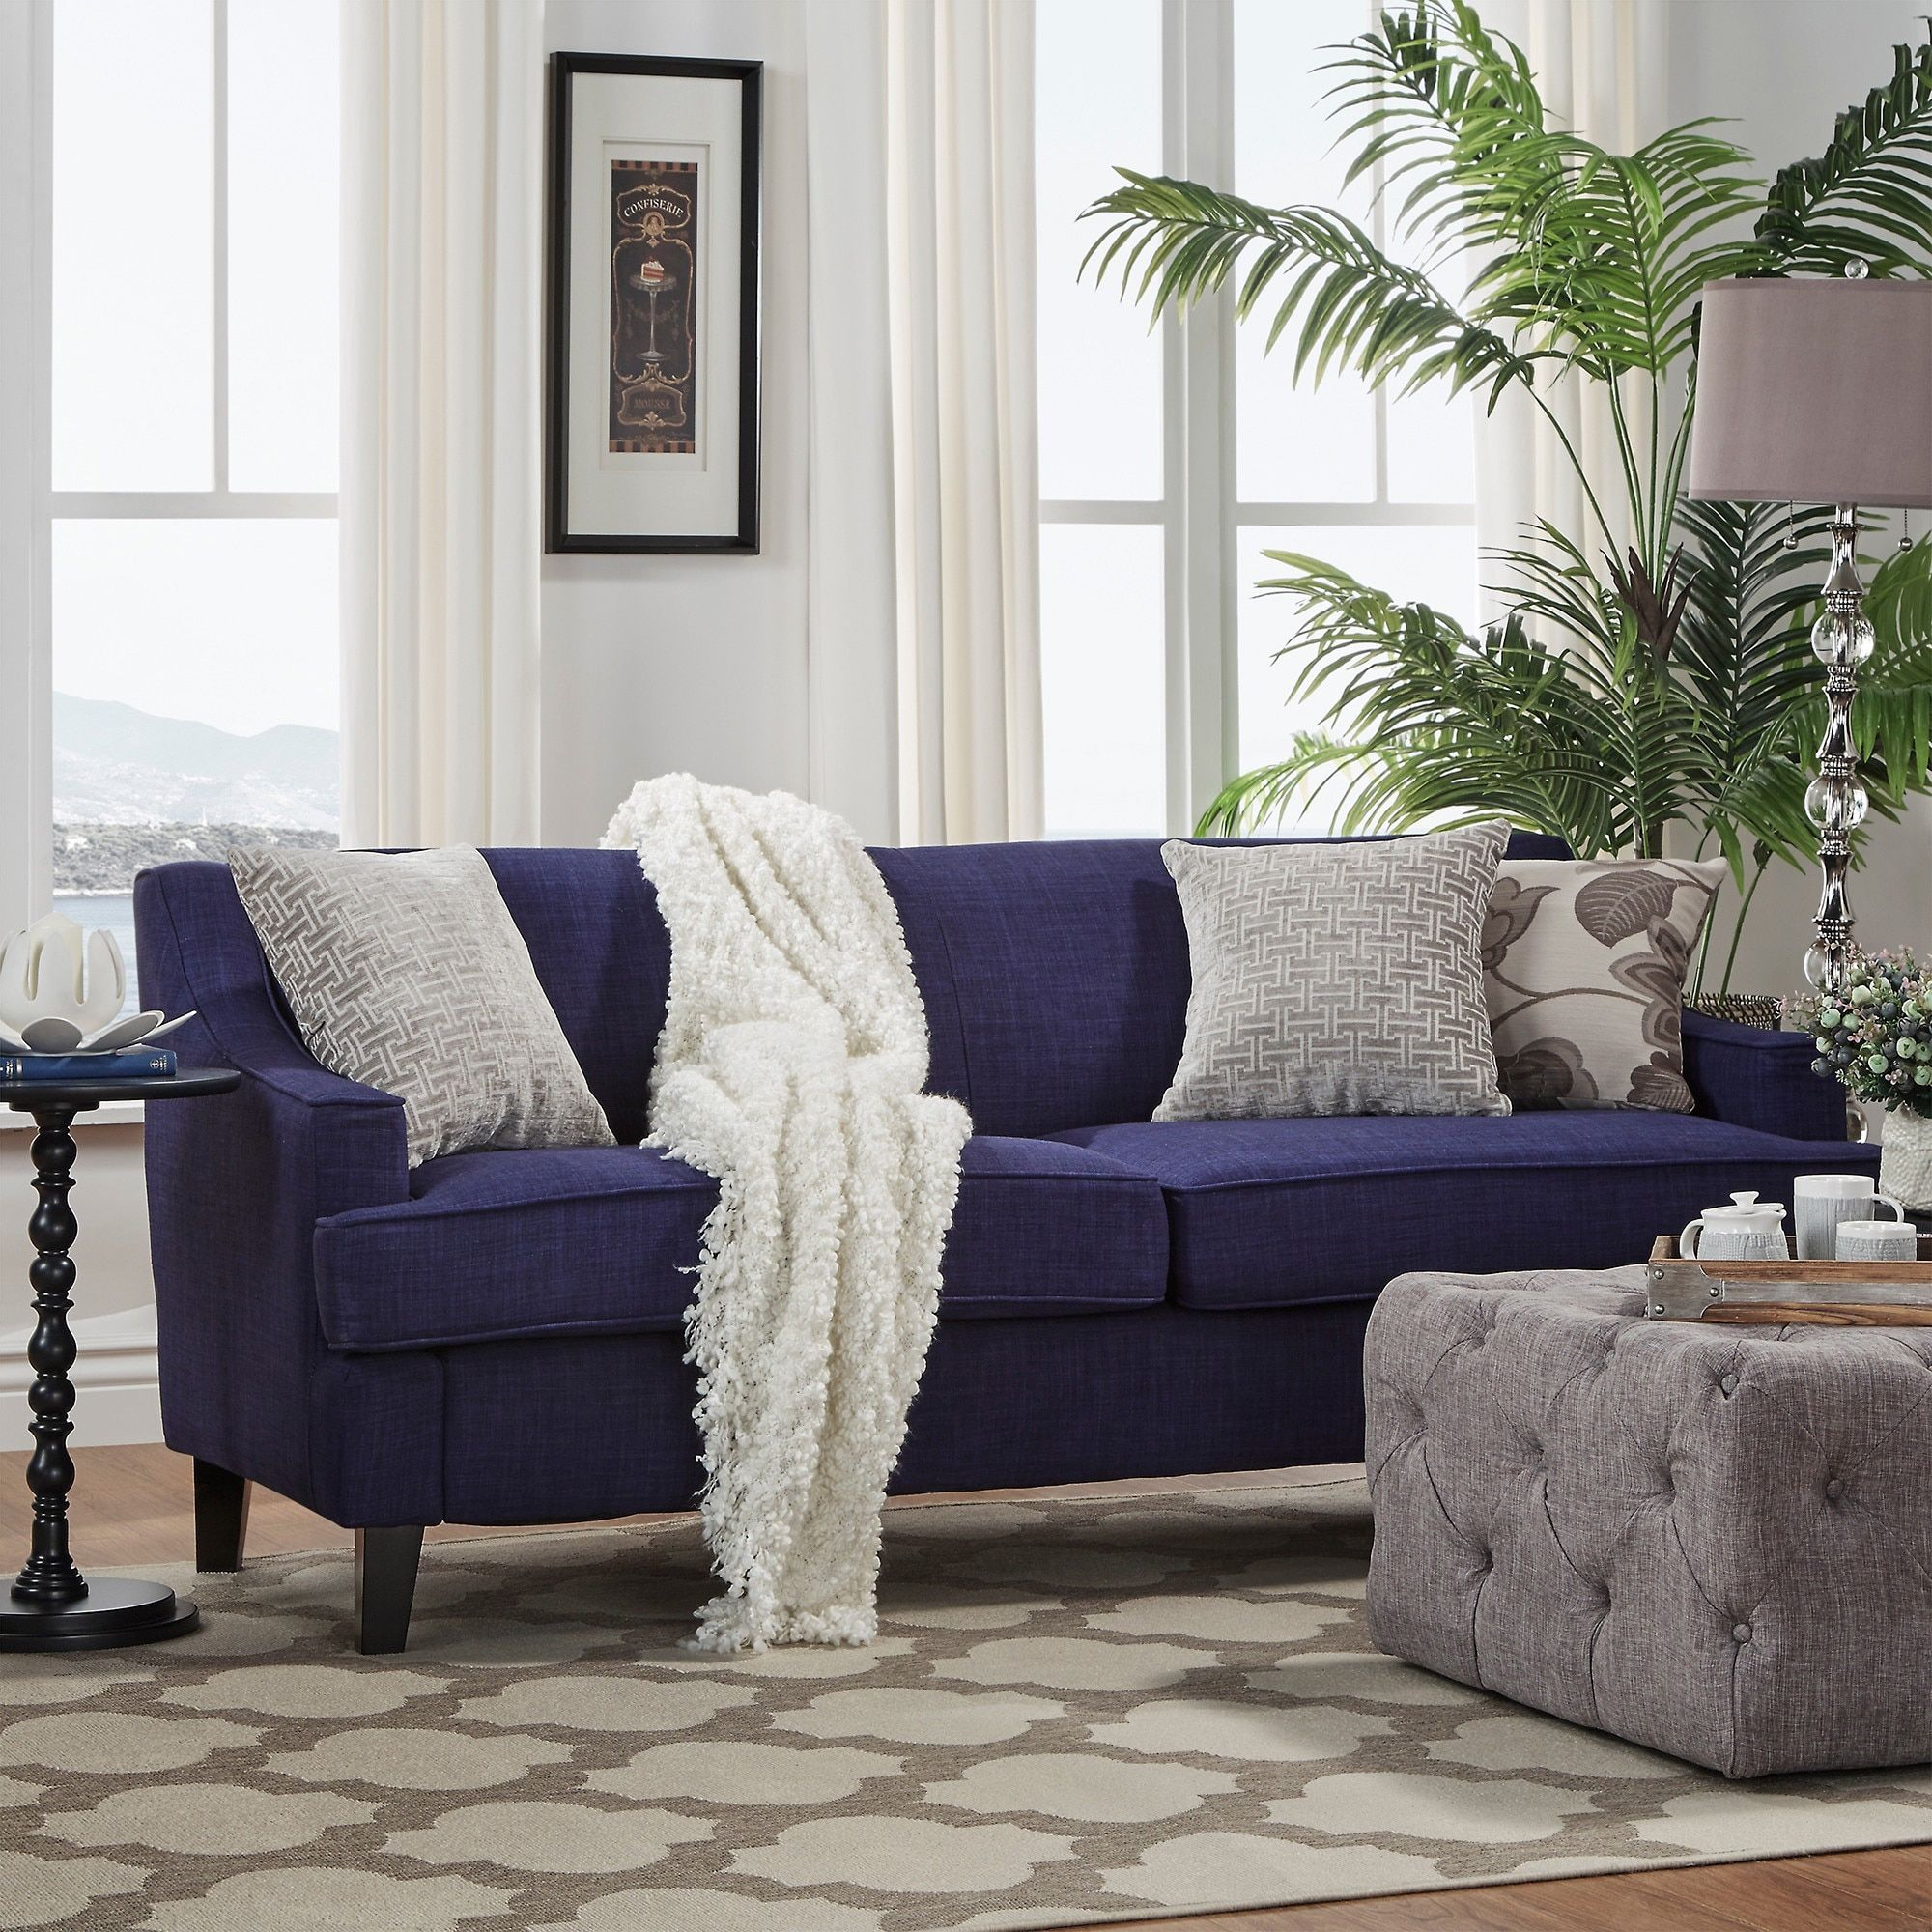 Winslow Linen Fabric Modern Sofa by INSPIRE Q | Overstock.com Shopping -  The Best